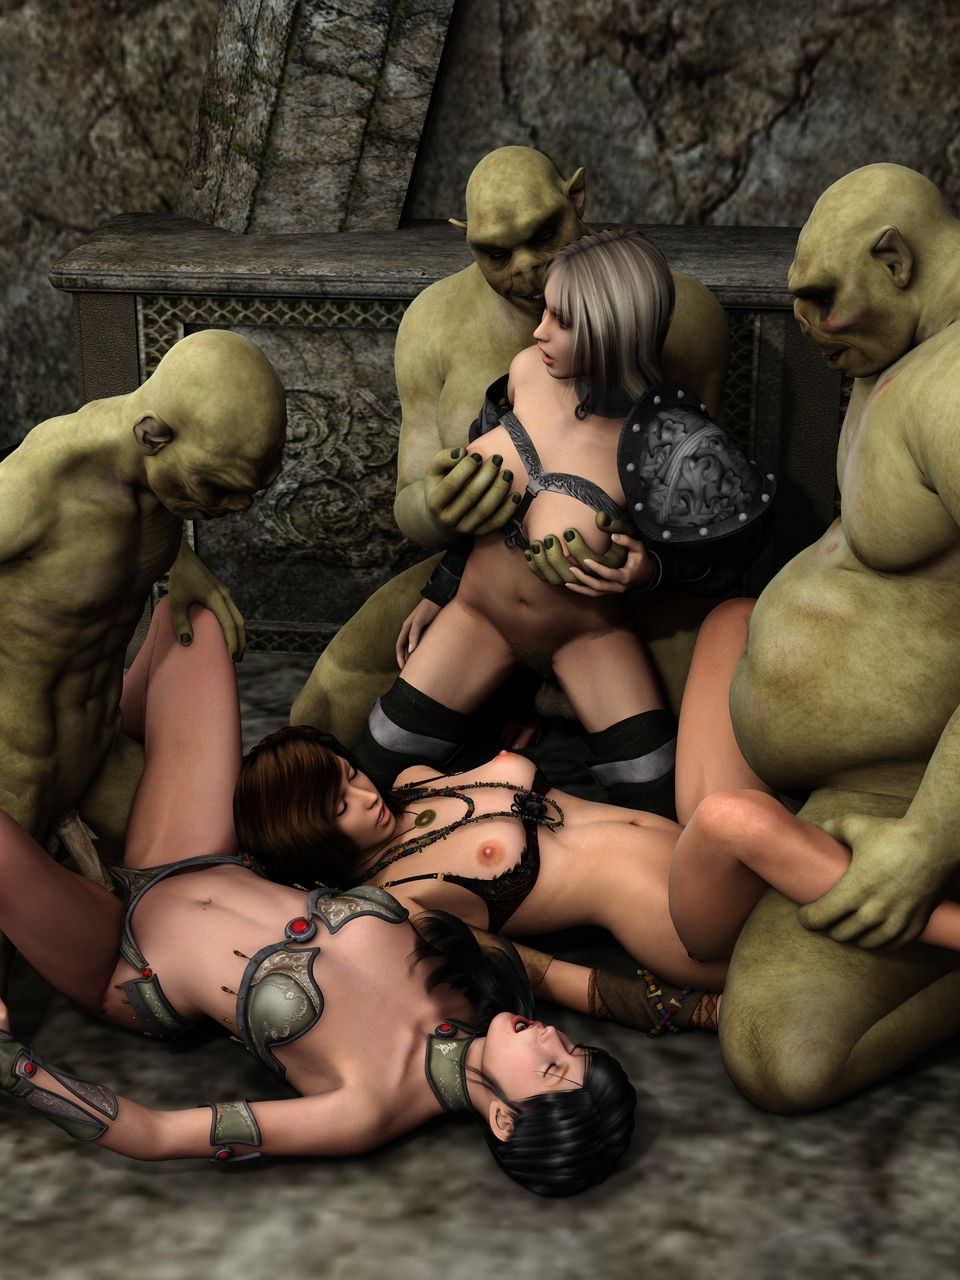 Animated Monster Fuck free 3d monster cartoon porn videos